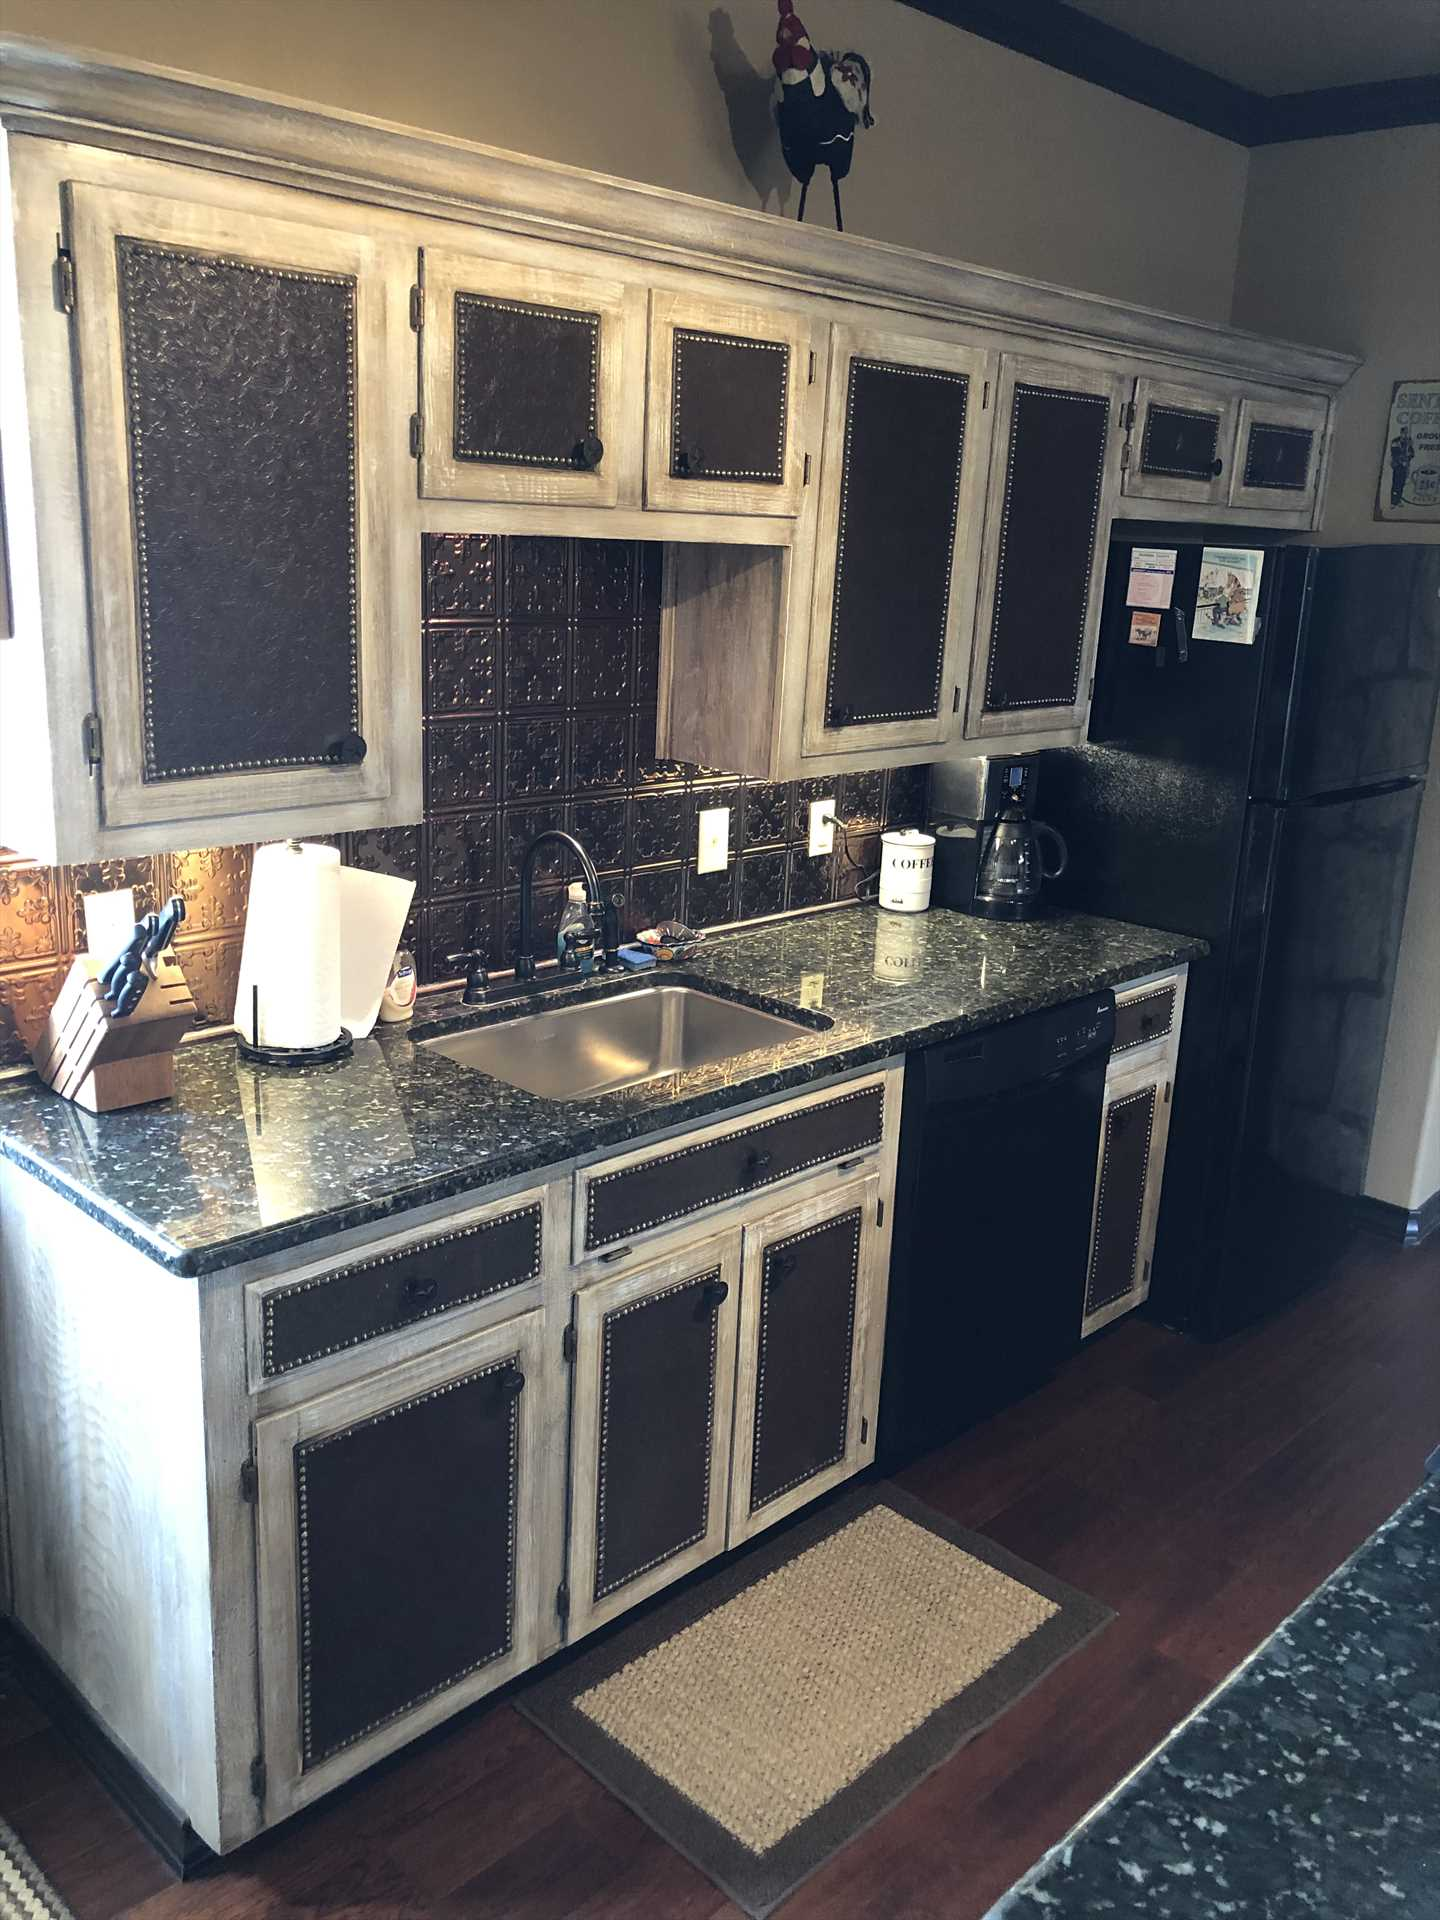 High-contrast cabinetry and accents give the full kitchen a vintage and modern look all at the same time!